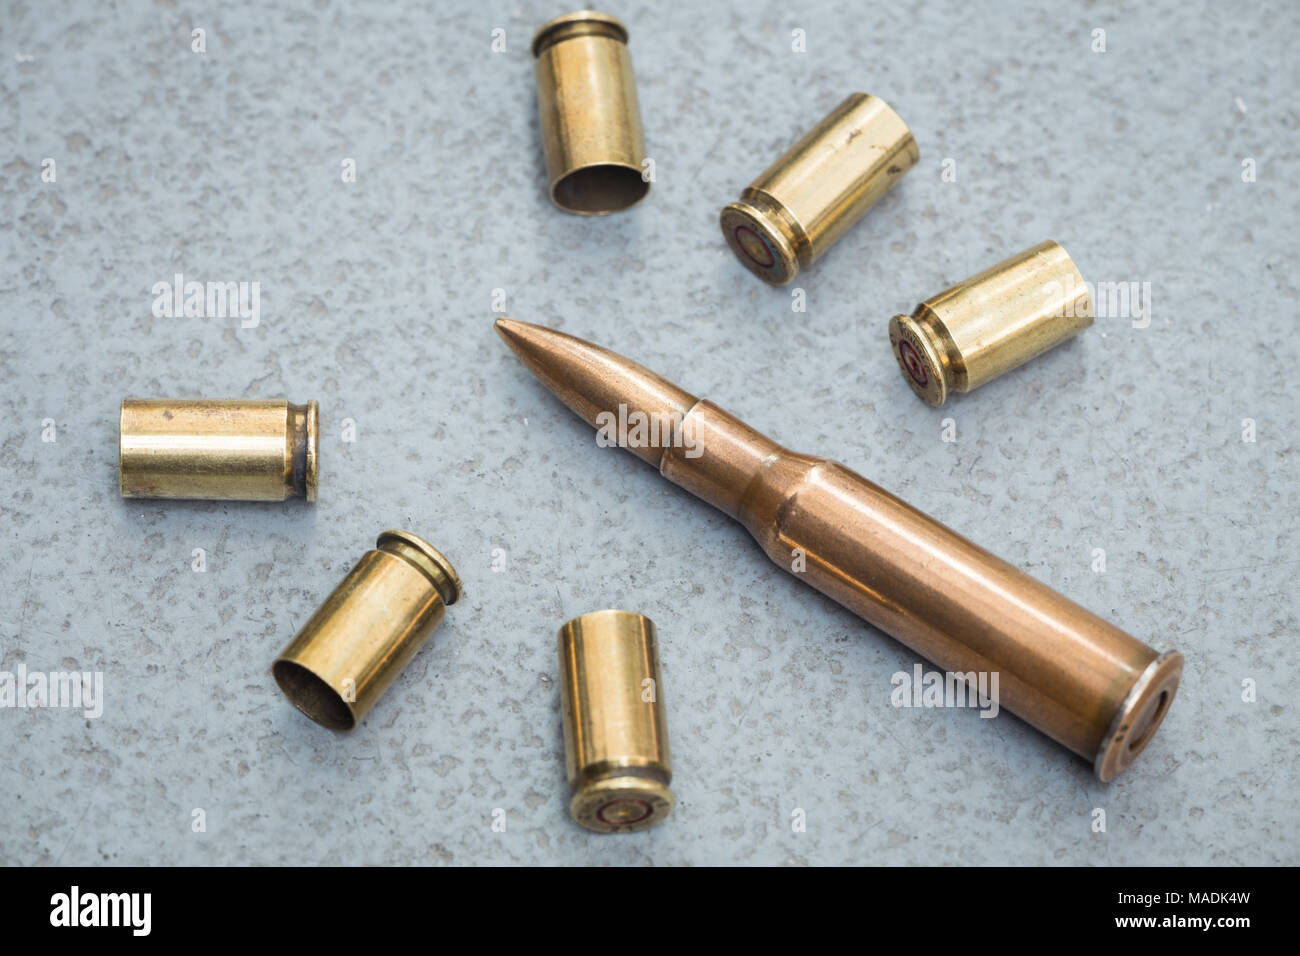 cartridges and scales from various types of weapons - Stock Image